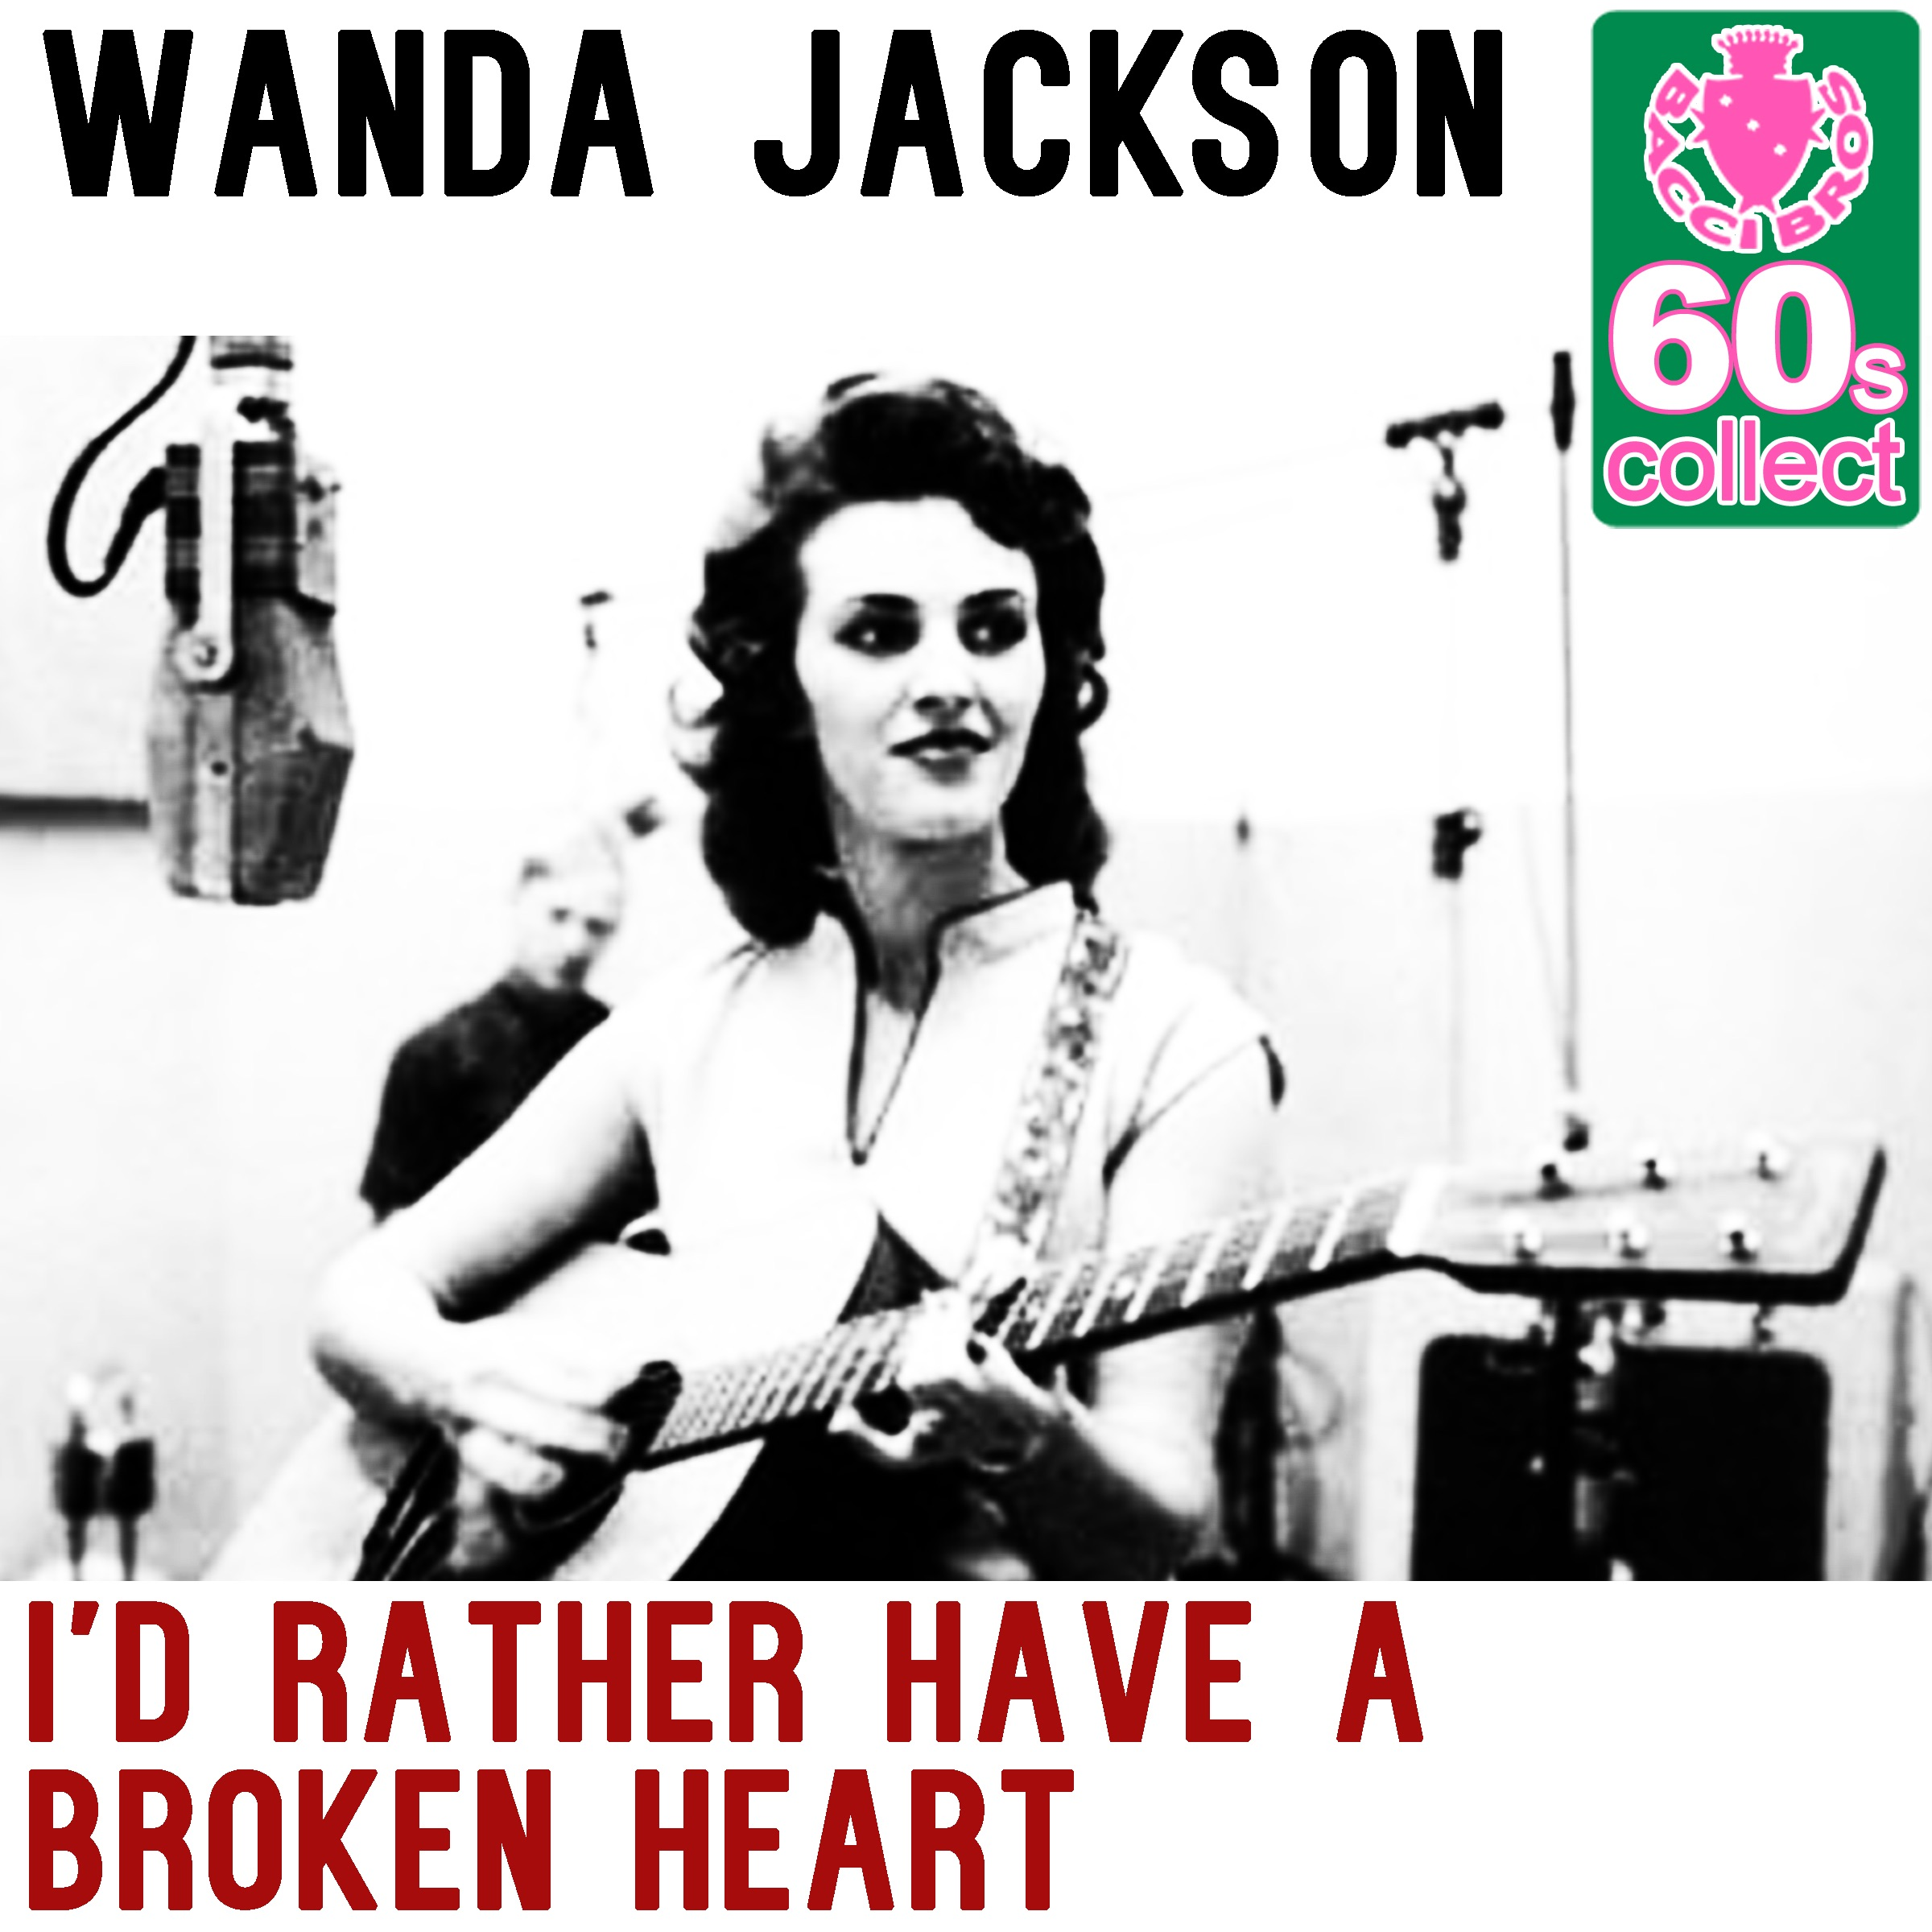 I'd Rather Have a Broken Heart (Remastered) - Single